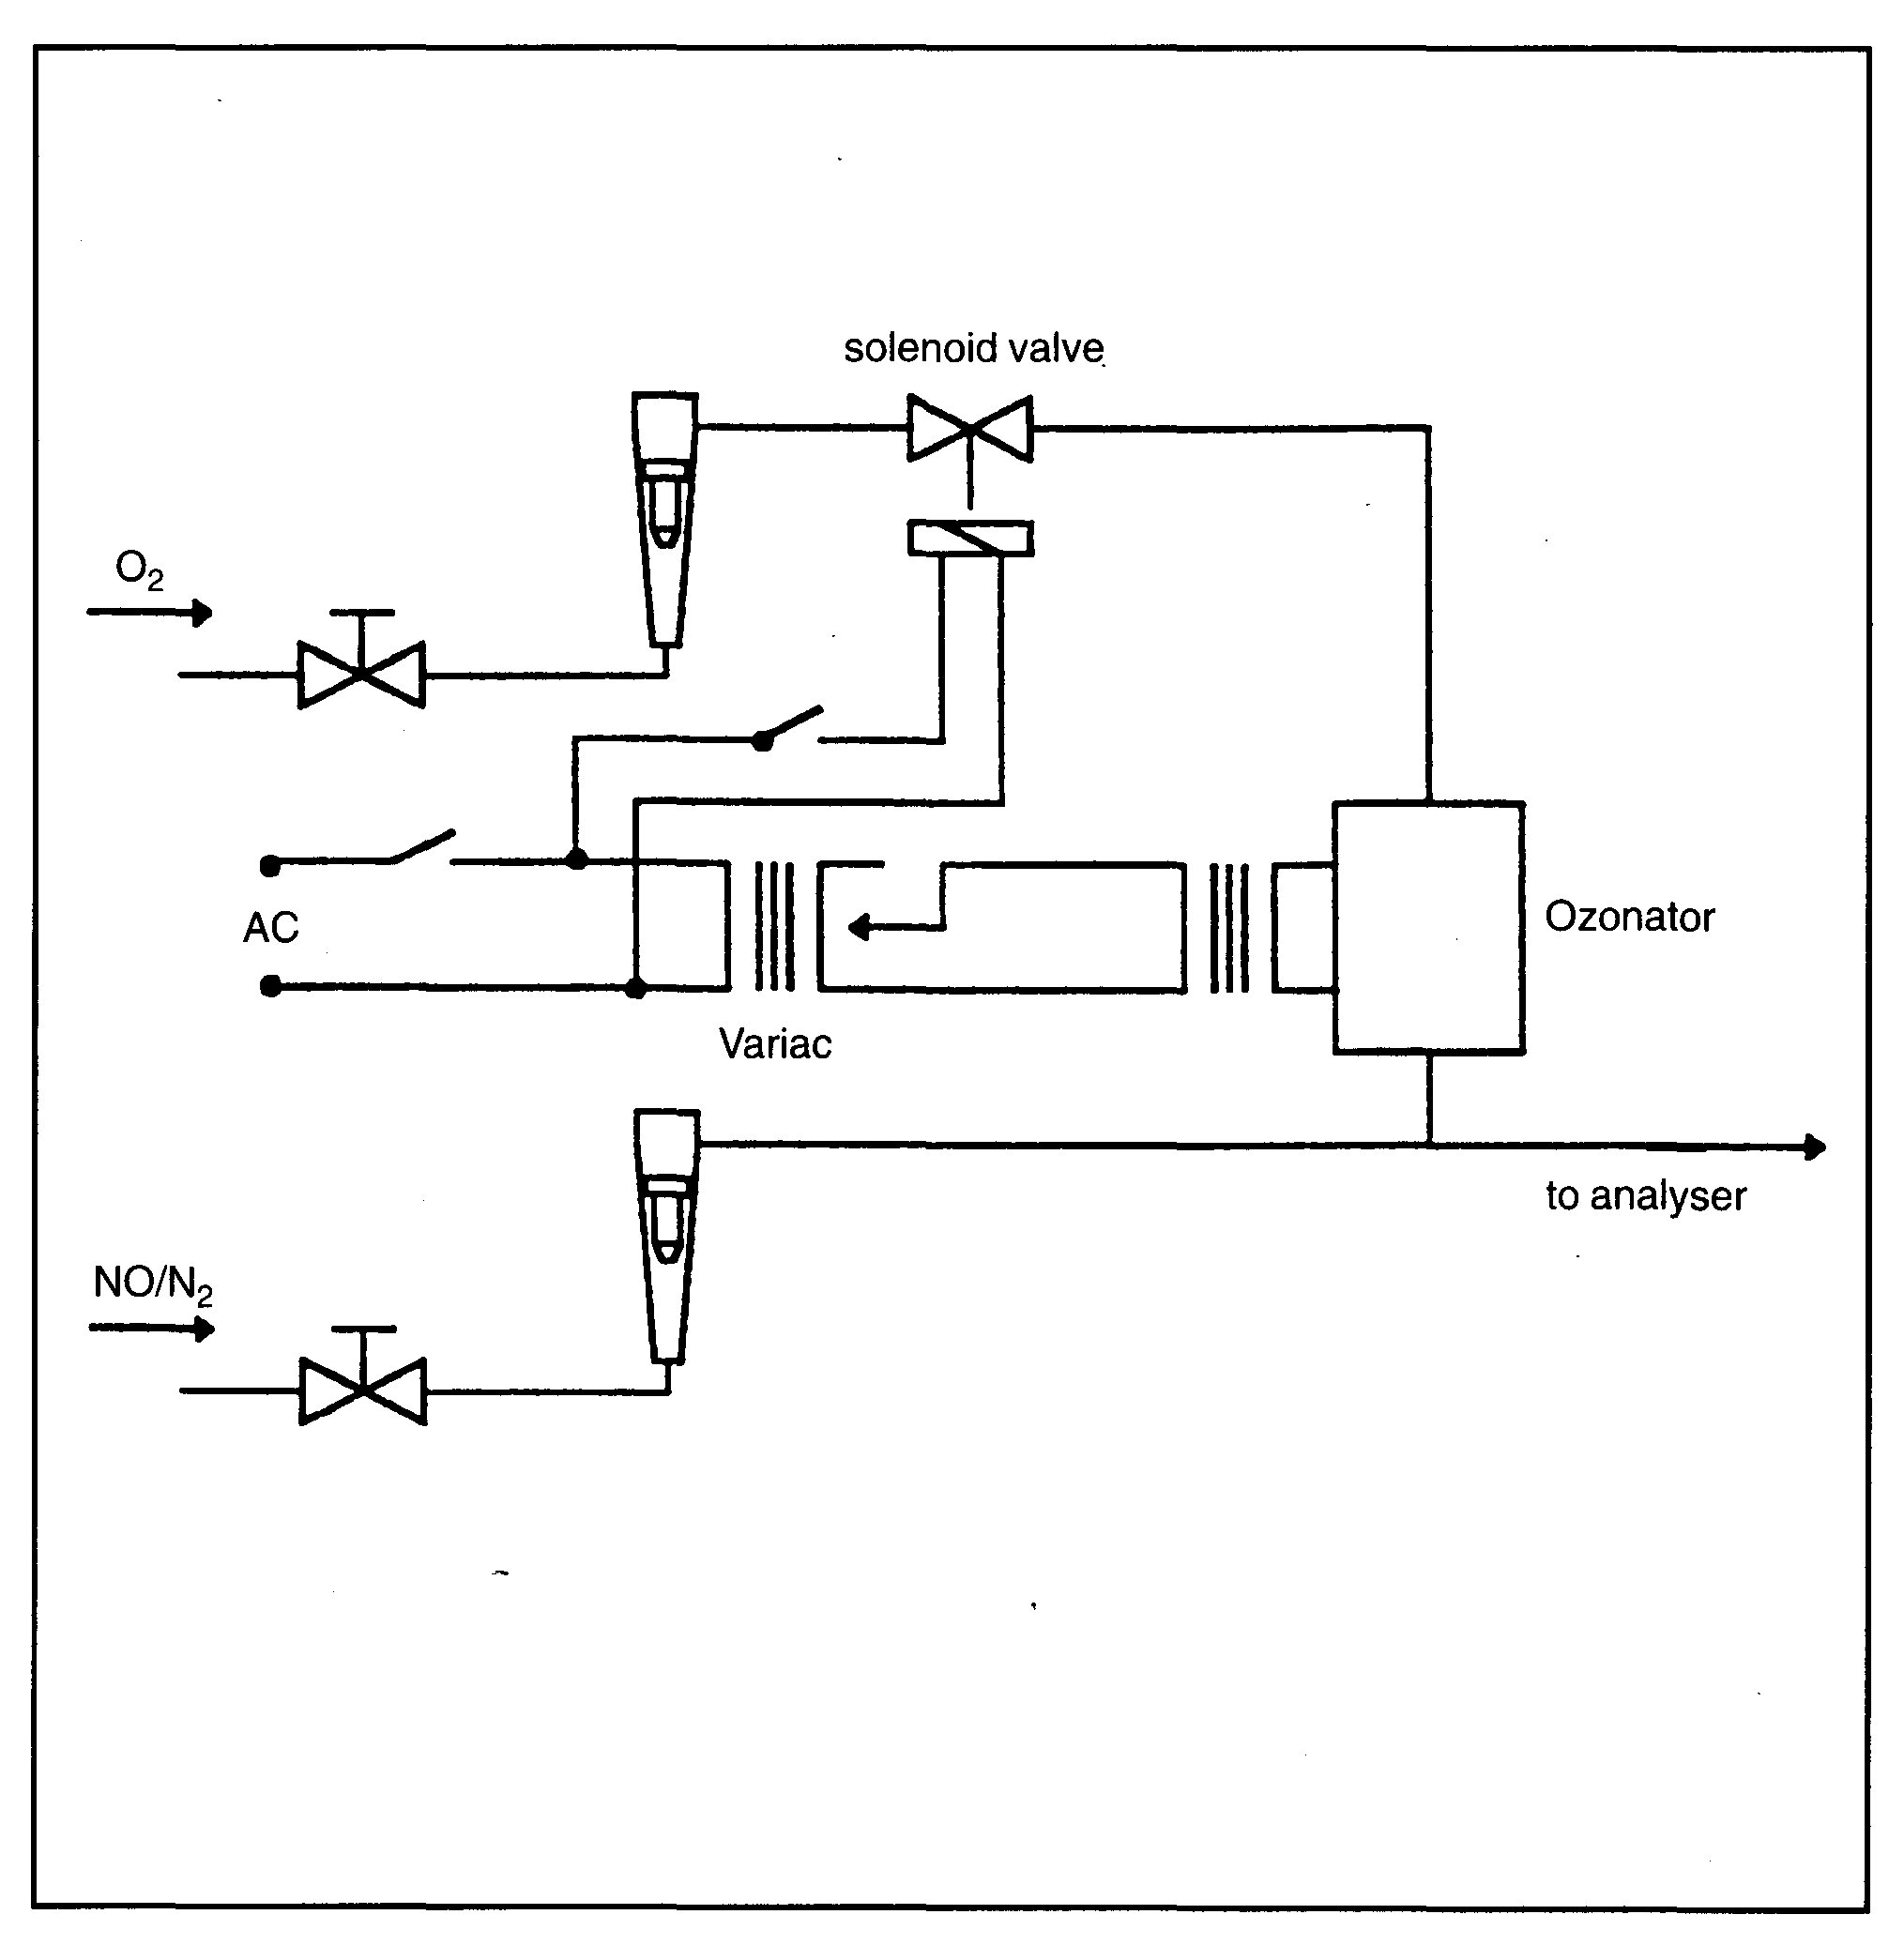 Eur Lex 01997l0068 20161006 En Control System For An On 424 International Tractor Hydraulics Diagram Figure 1 Schematic Of No2 Converter Efficiency Device